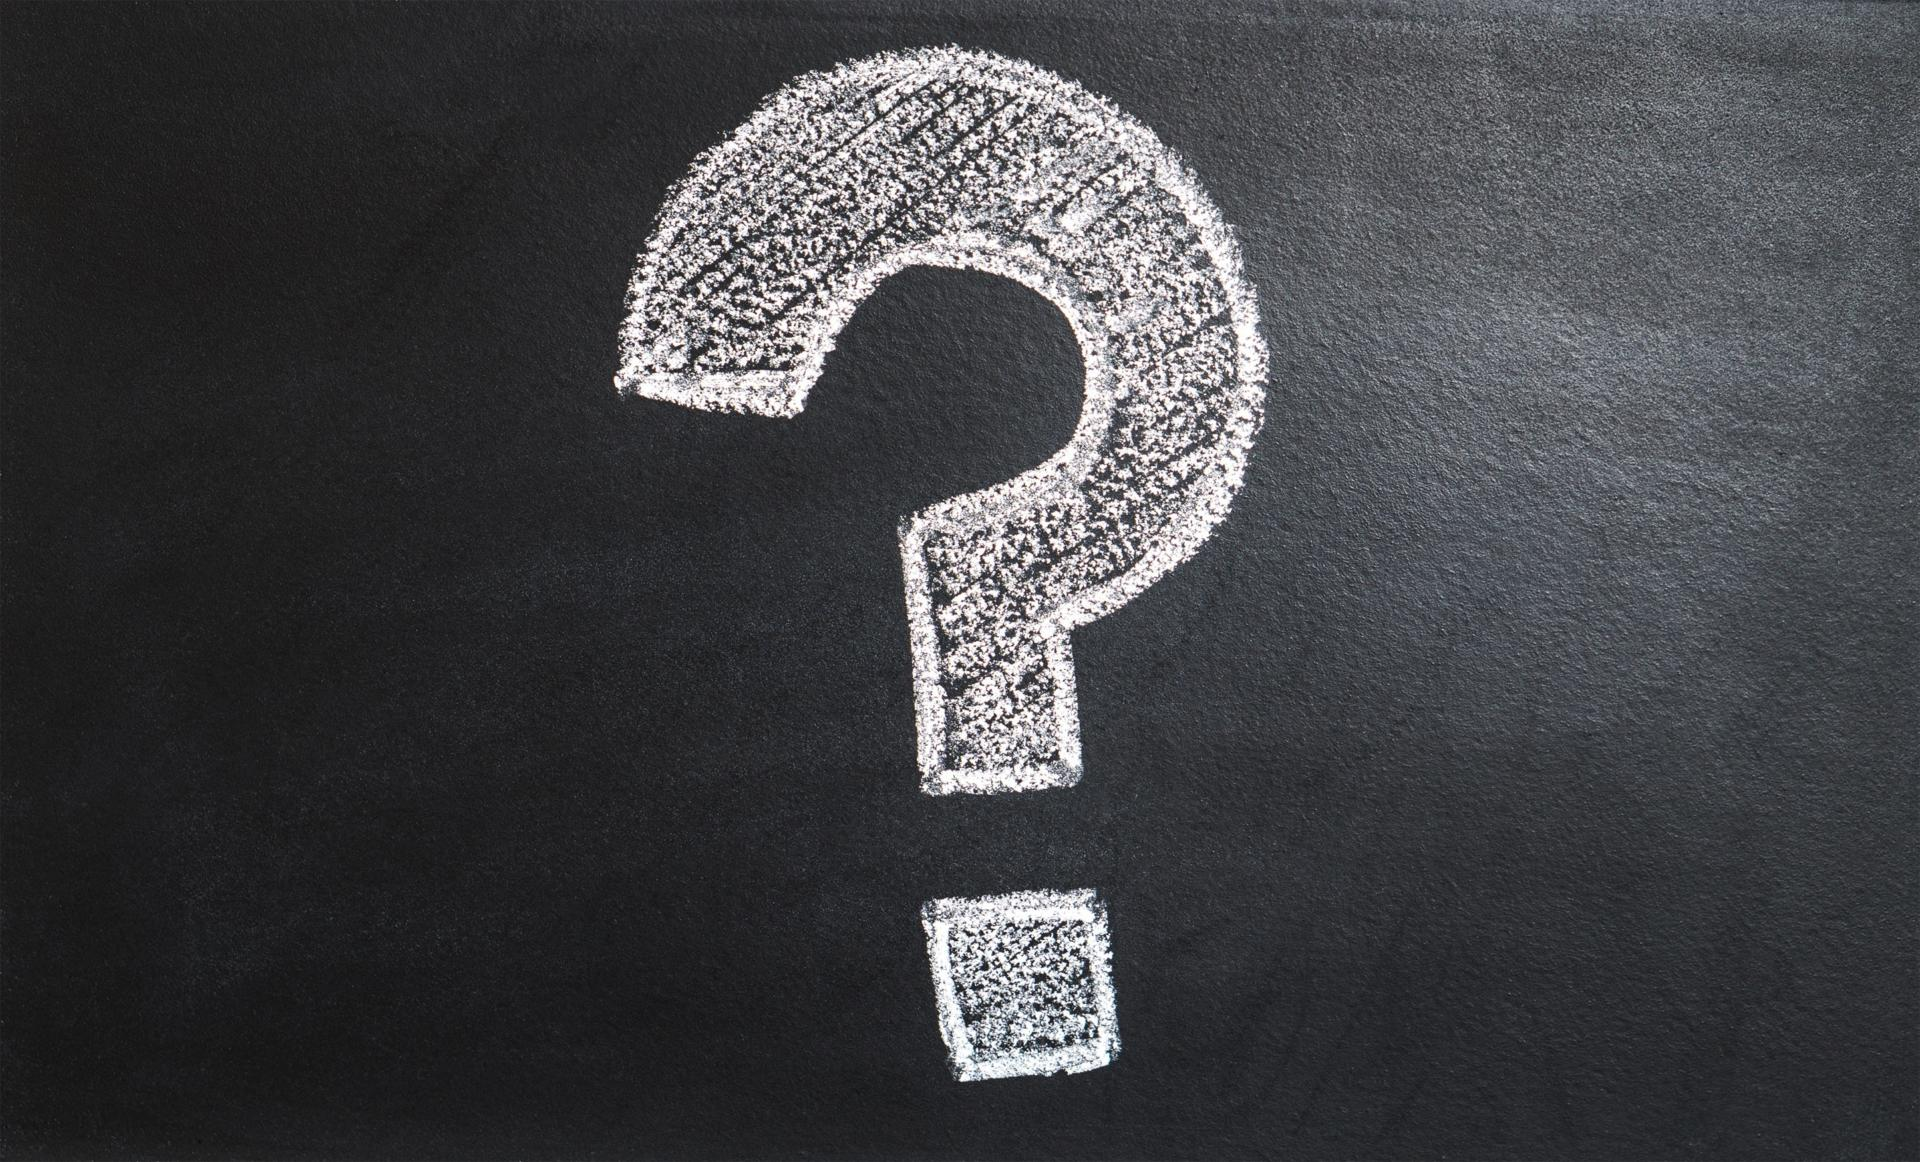 How will the IRS Ever Know? A photo of a question mark on a chalkboard